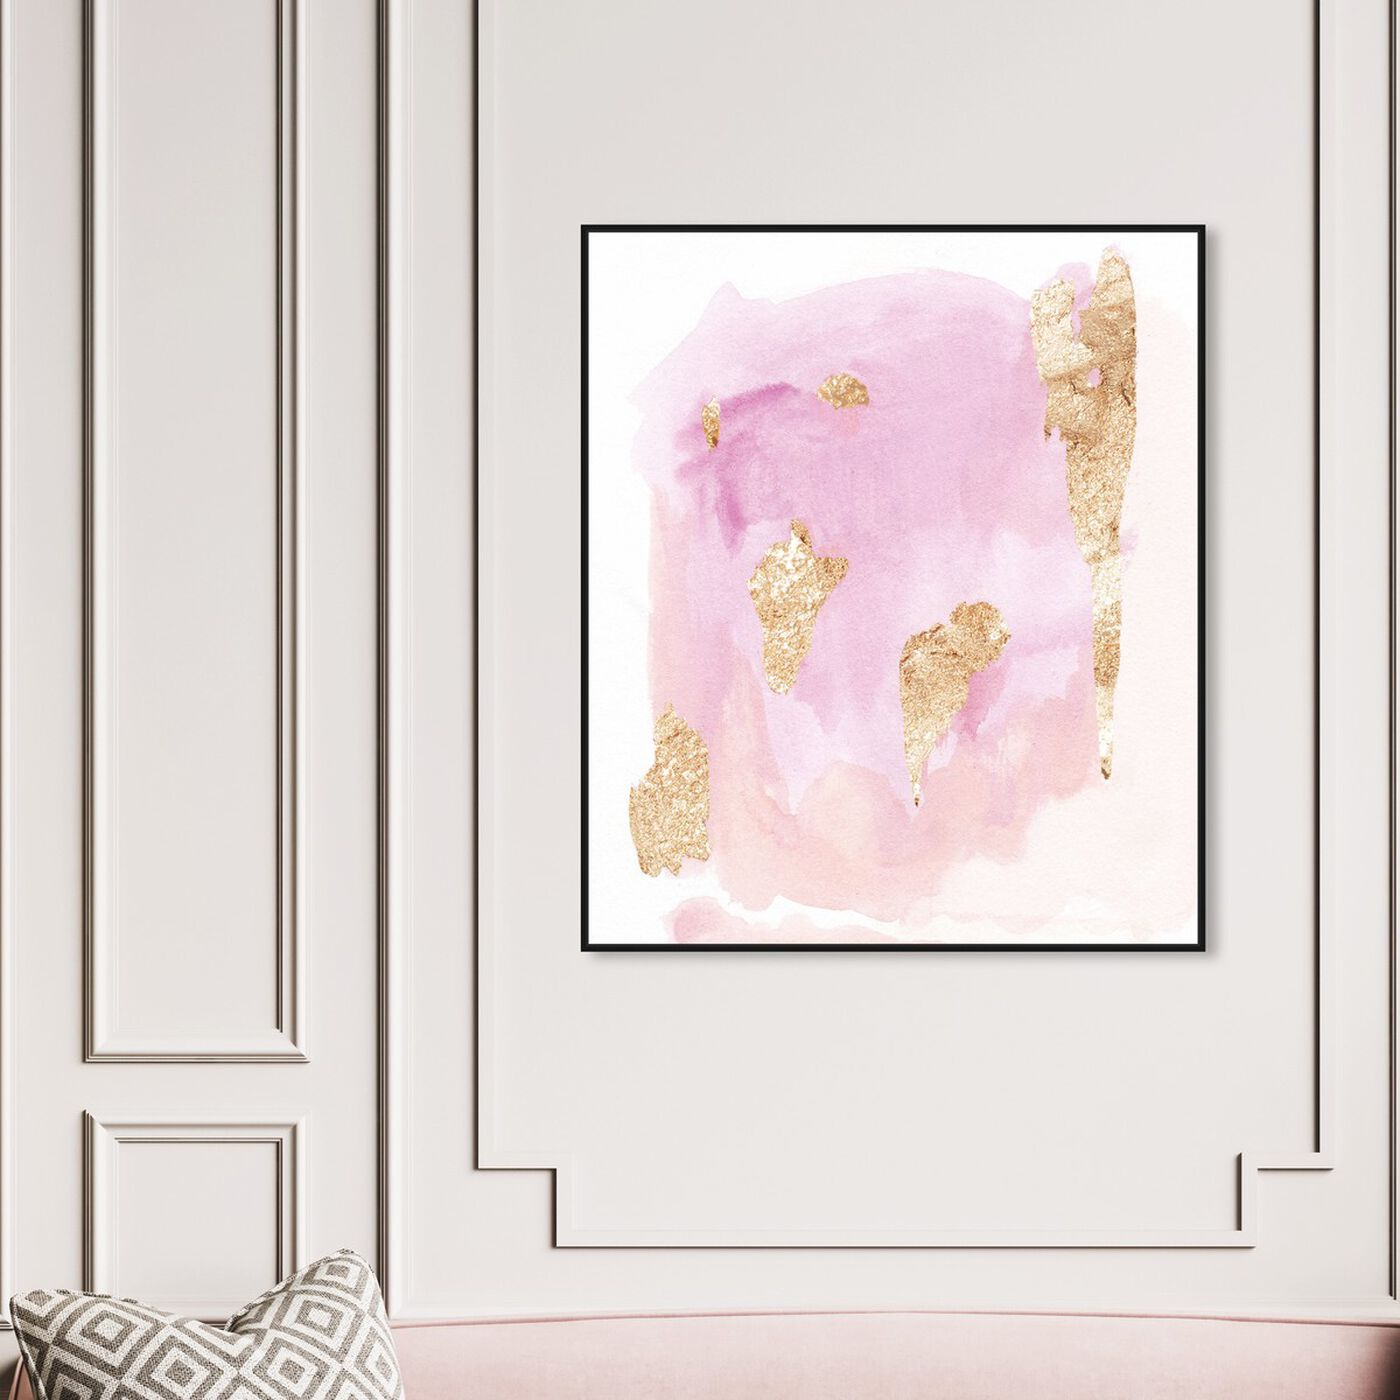 Hanging view of Pink Wednesdays featuring abstract and watercolor art.